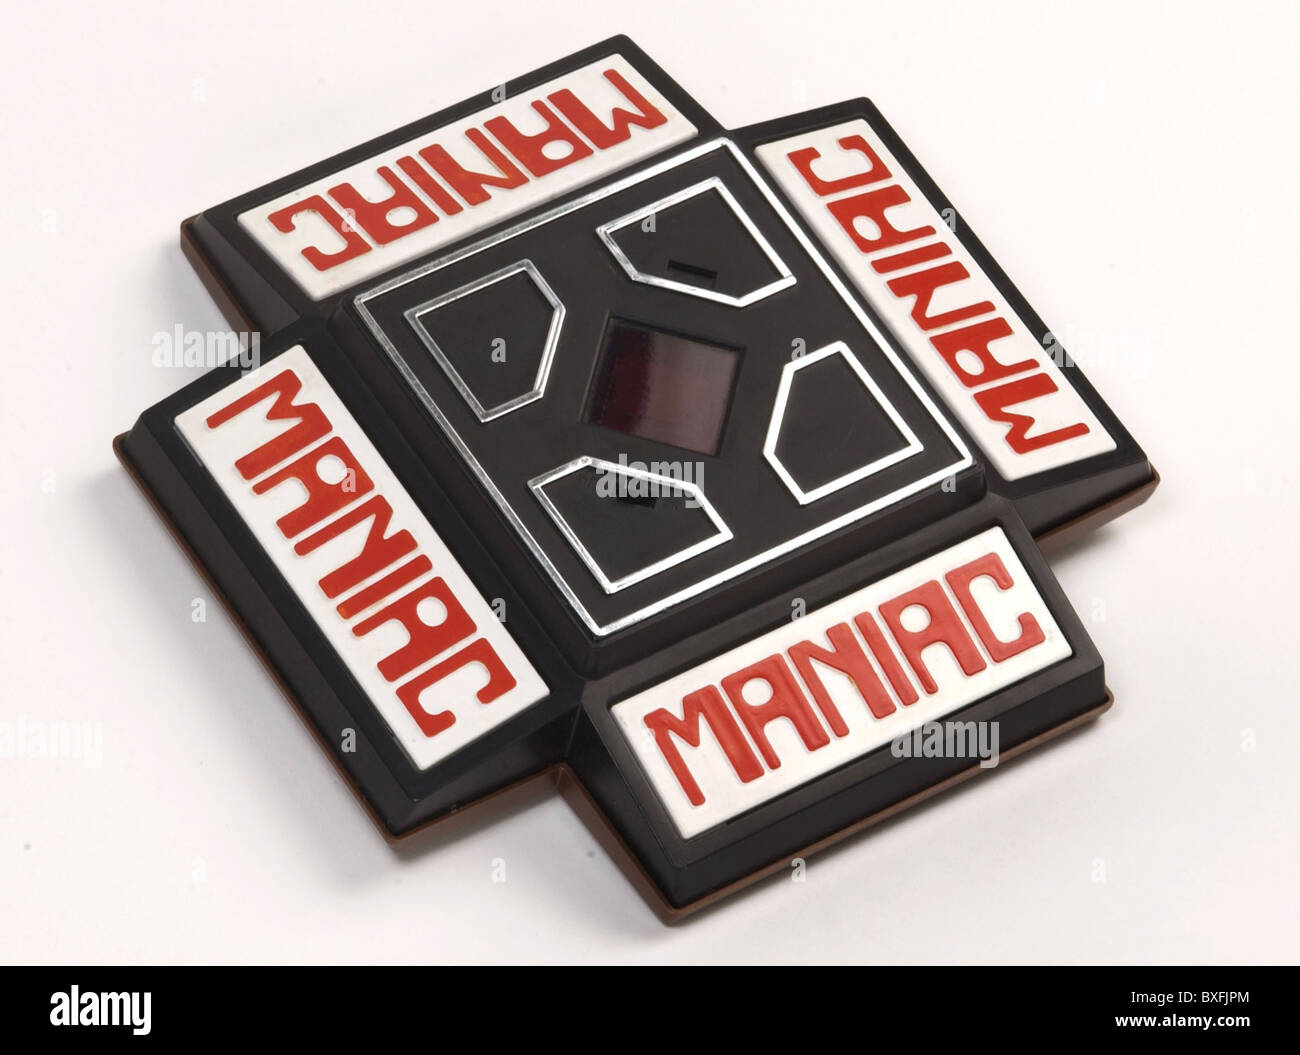 toys, Maniac, electronic toy of the Japanese manufacturer Ideal Toy Corporation, early video game, handhelt, Japan, - Stock Image